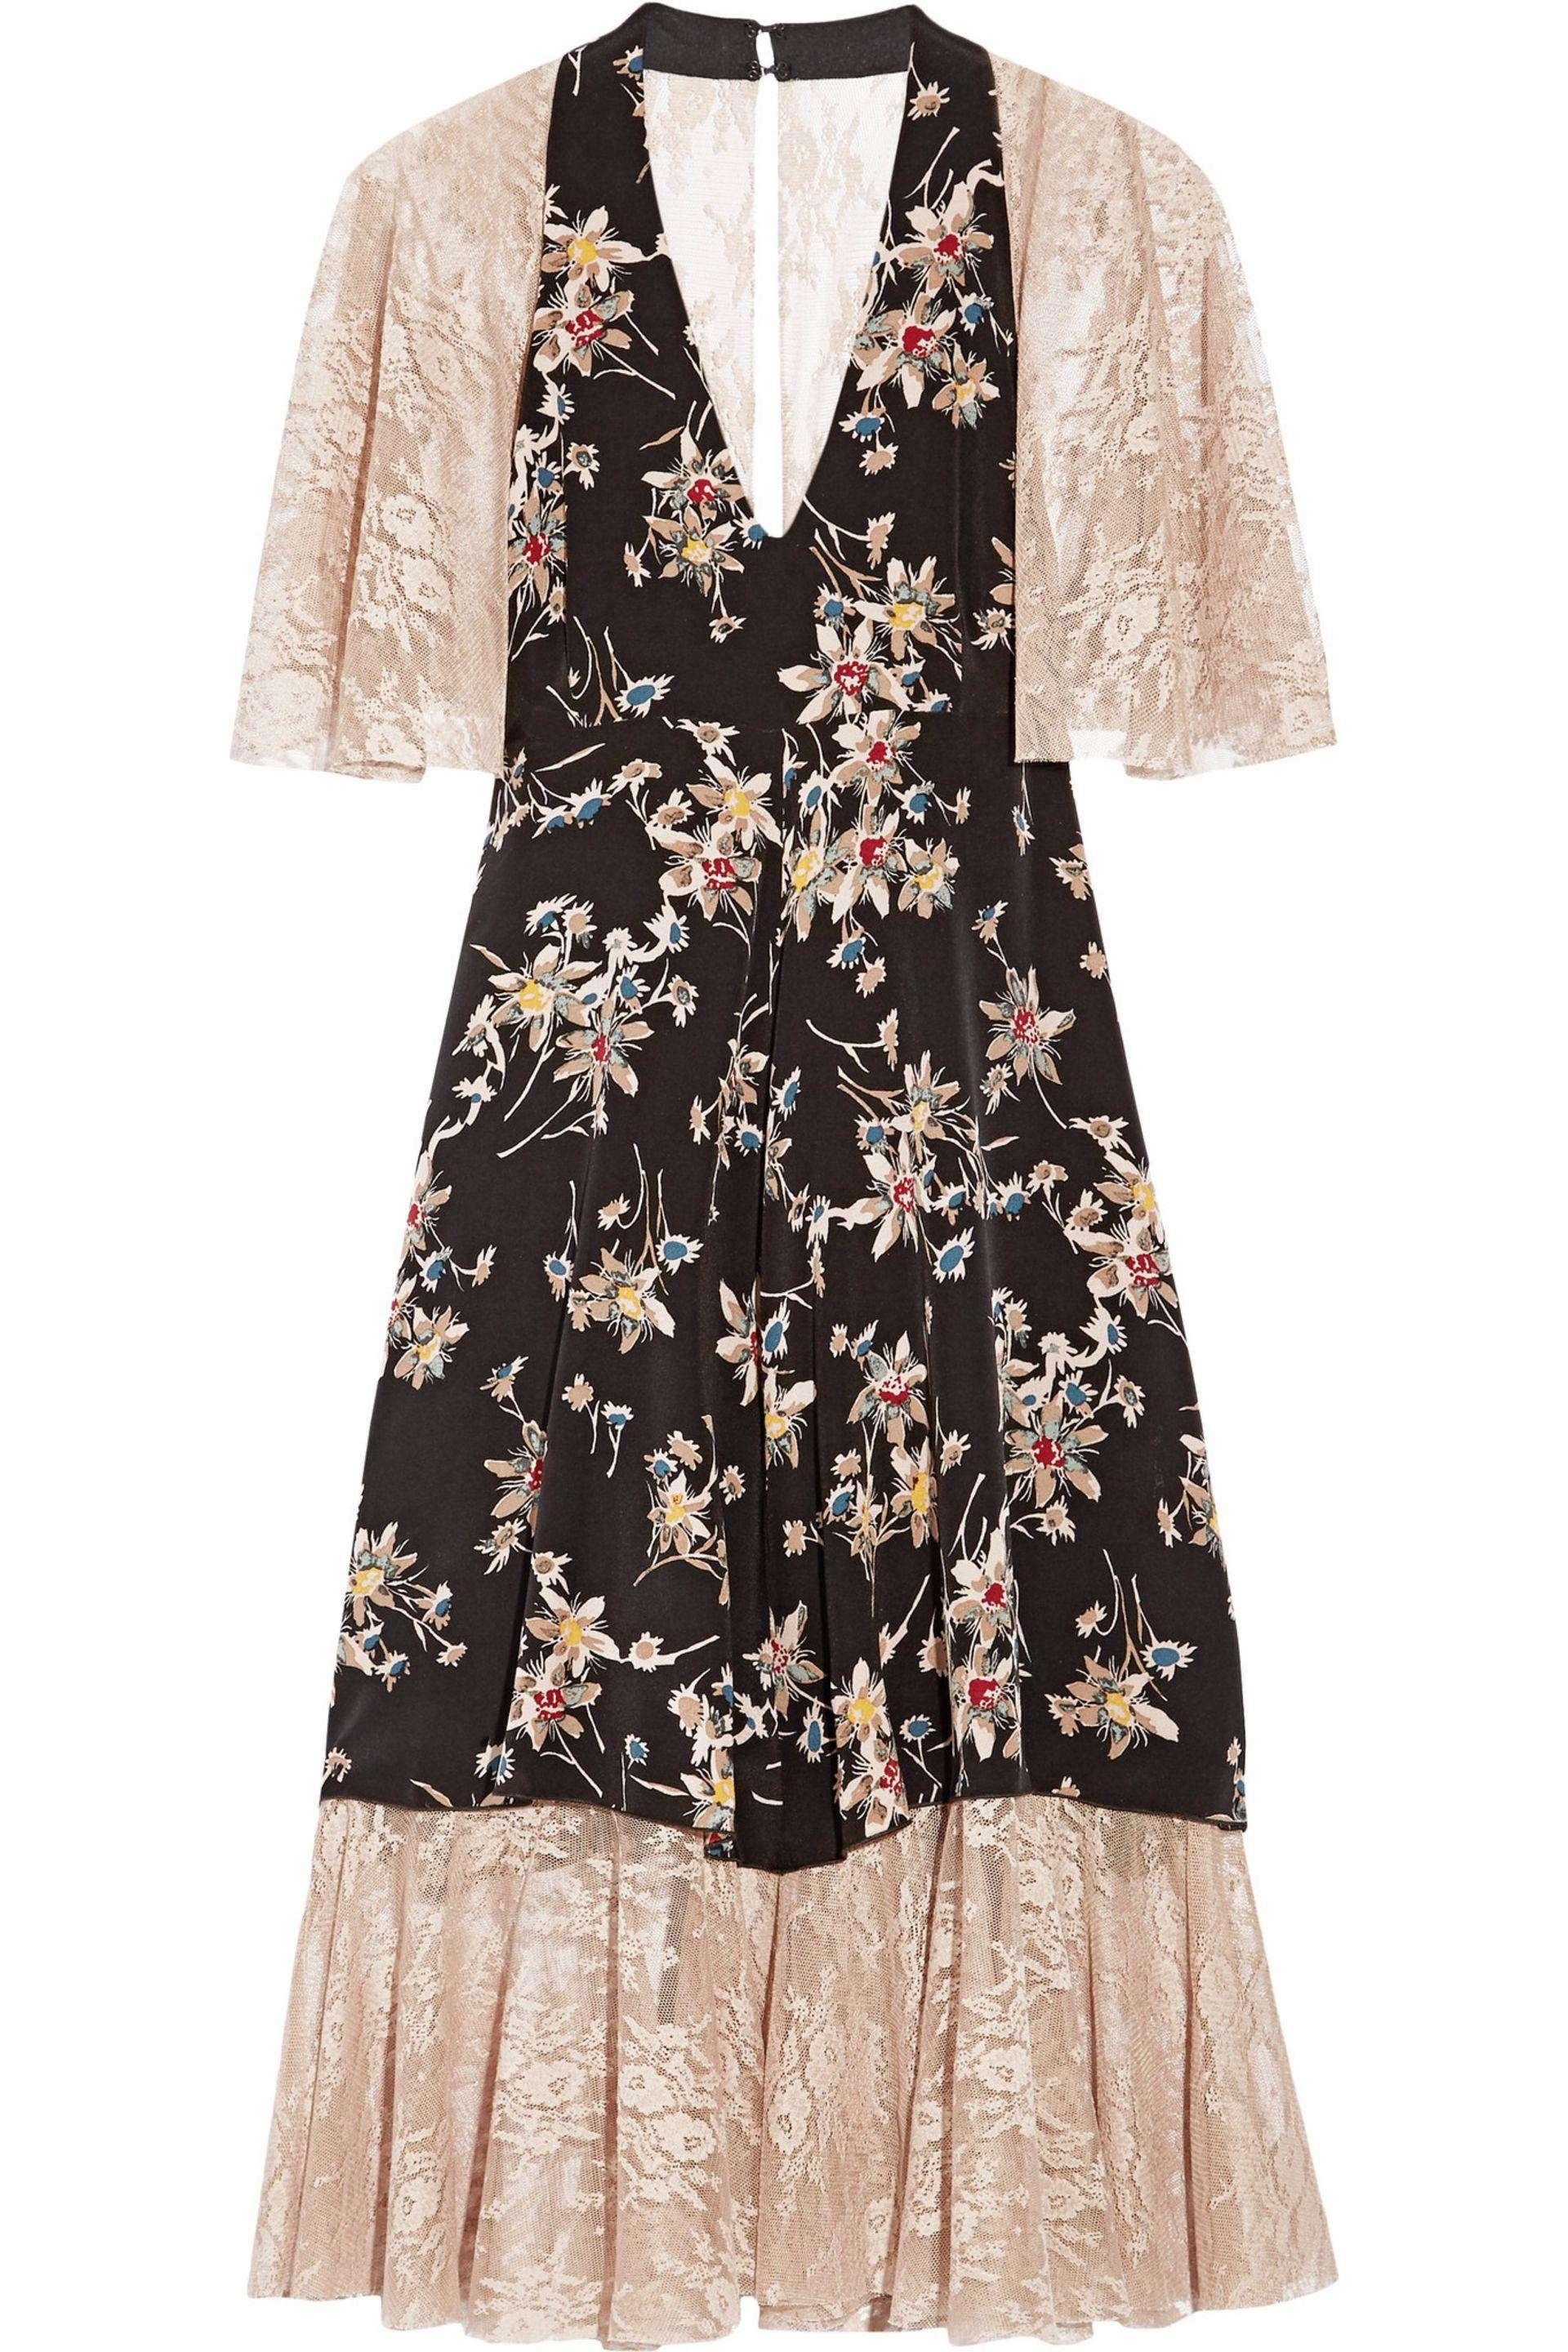 Anna sui printed crepe de chine and lace dress